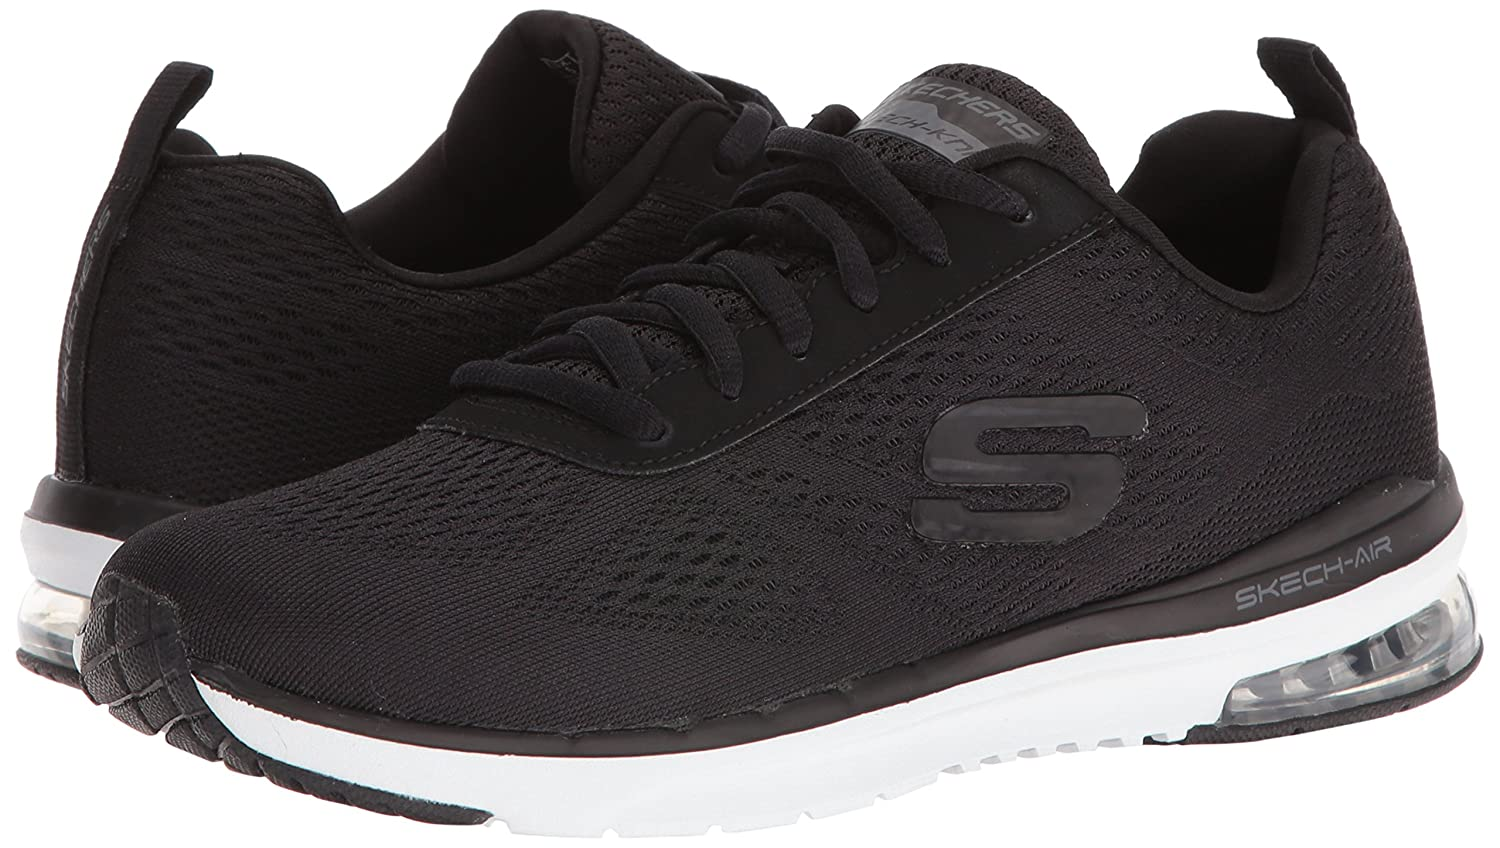 SKECHERS Skech-Air Infinity-Transform SzVypVJq